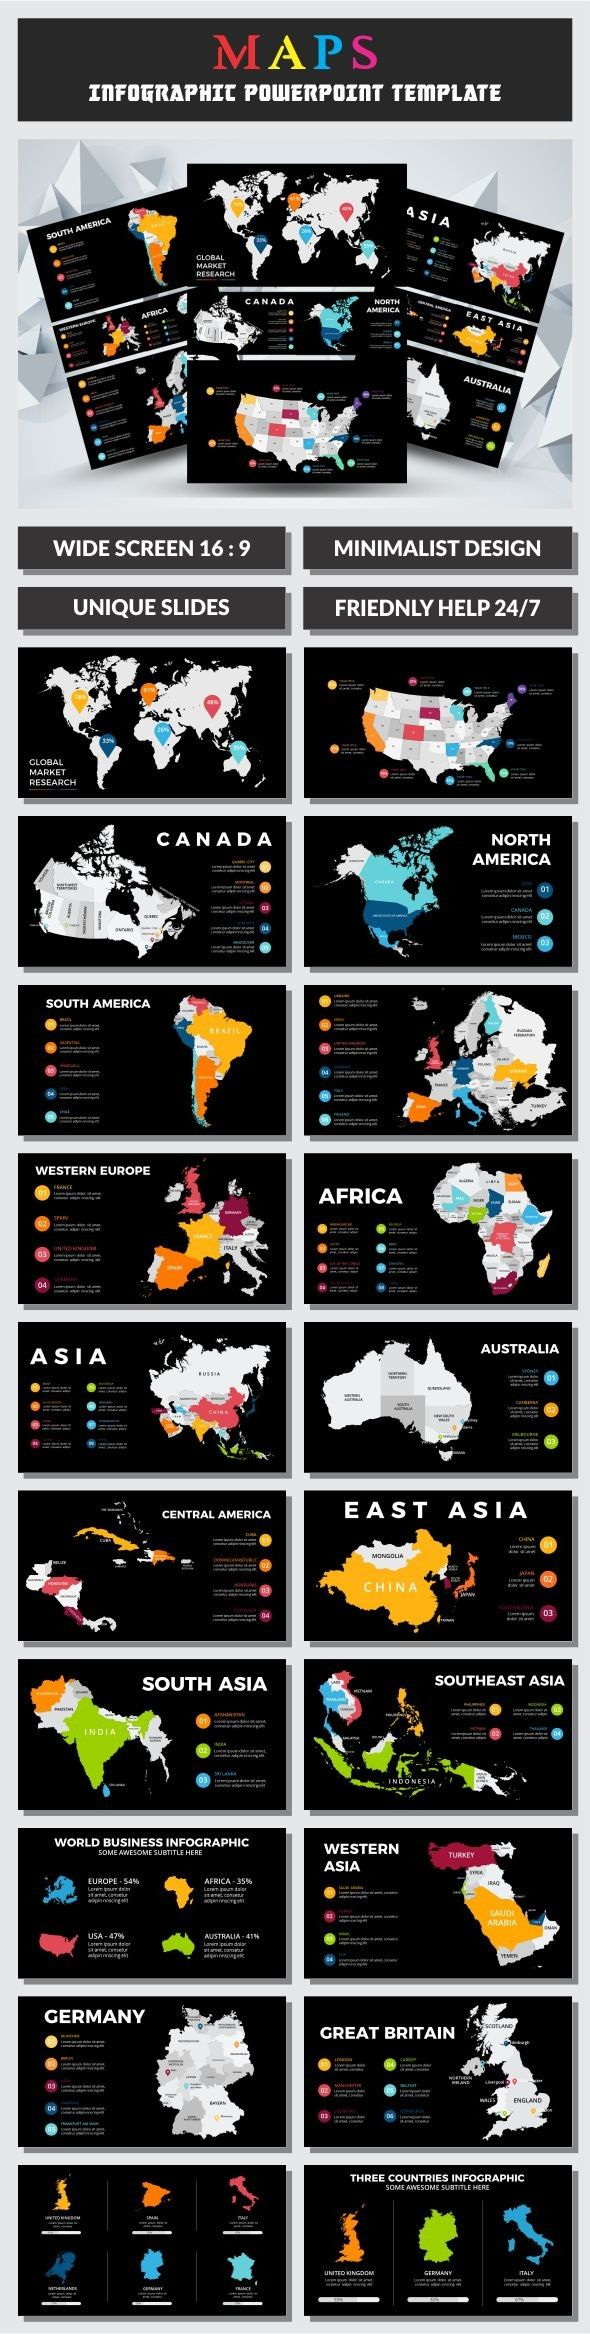 Maps infographic powerpoint template infographic buy maps and maps infographic powerpoint template infographic buy maps and template toneelgroepblik Choice Image